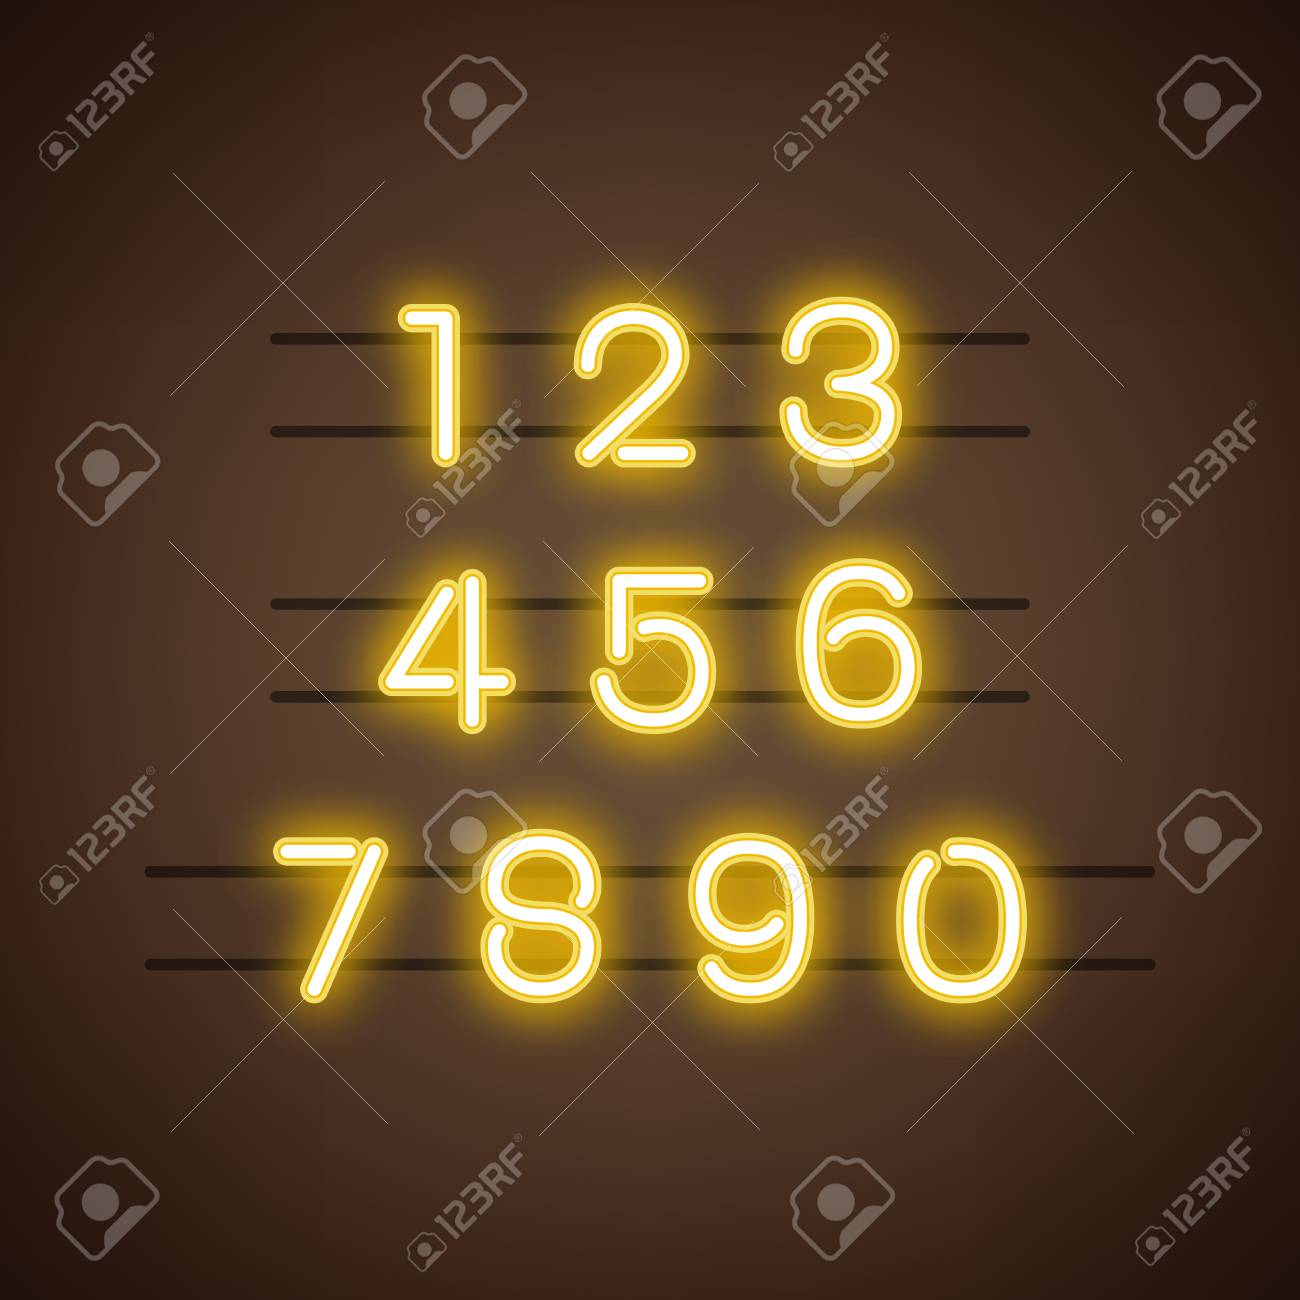 Number 0-9 numeral system vector - 125970825